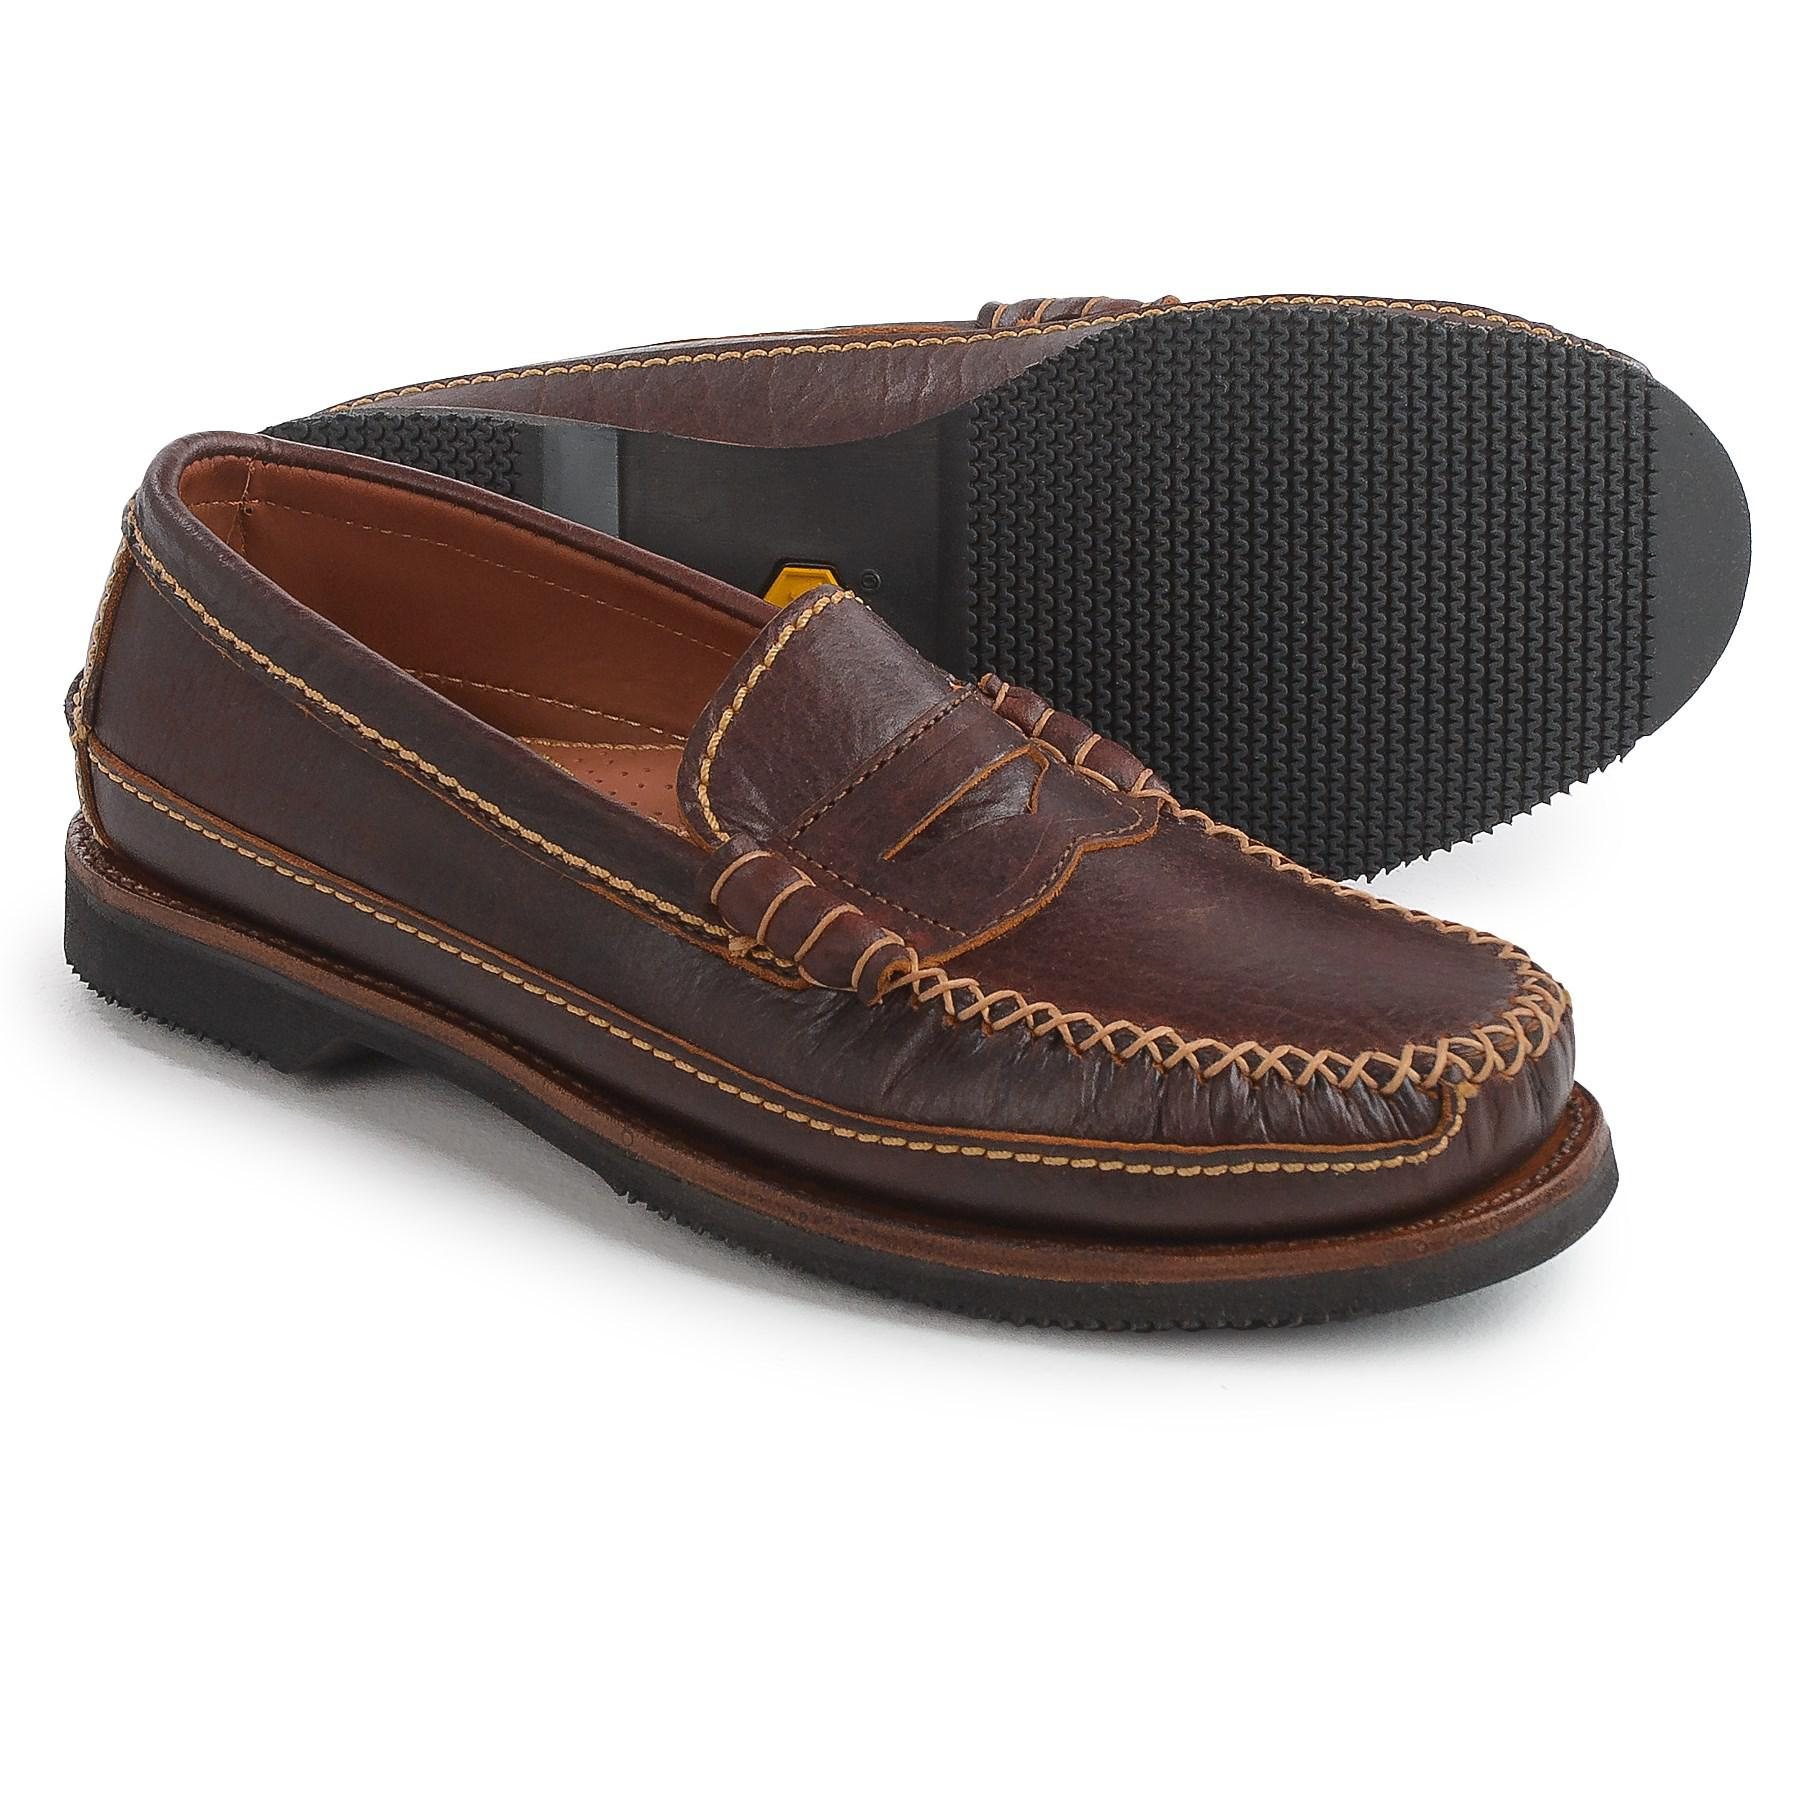 35a77e2835e Lyst - Chippewa American Bison Leather Penny Loafers in Brown for Men